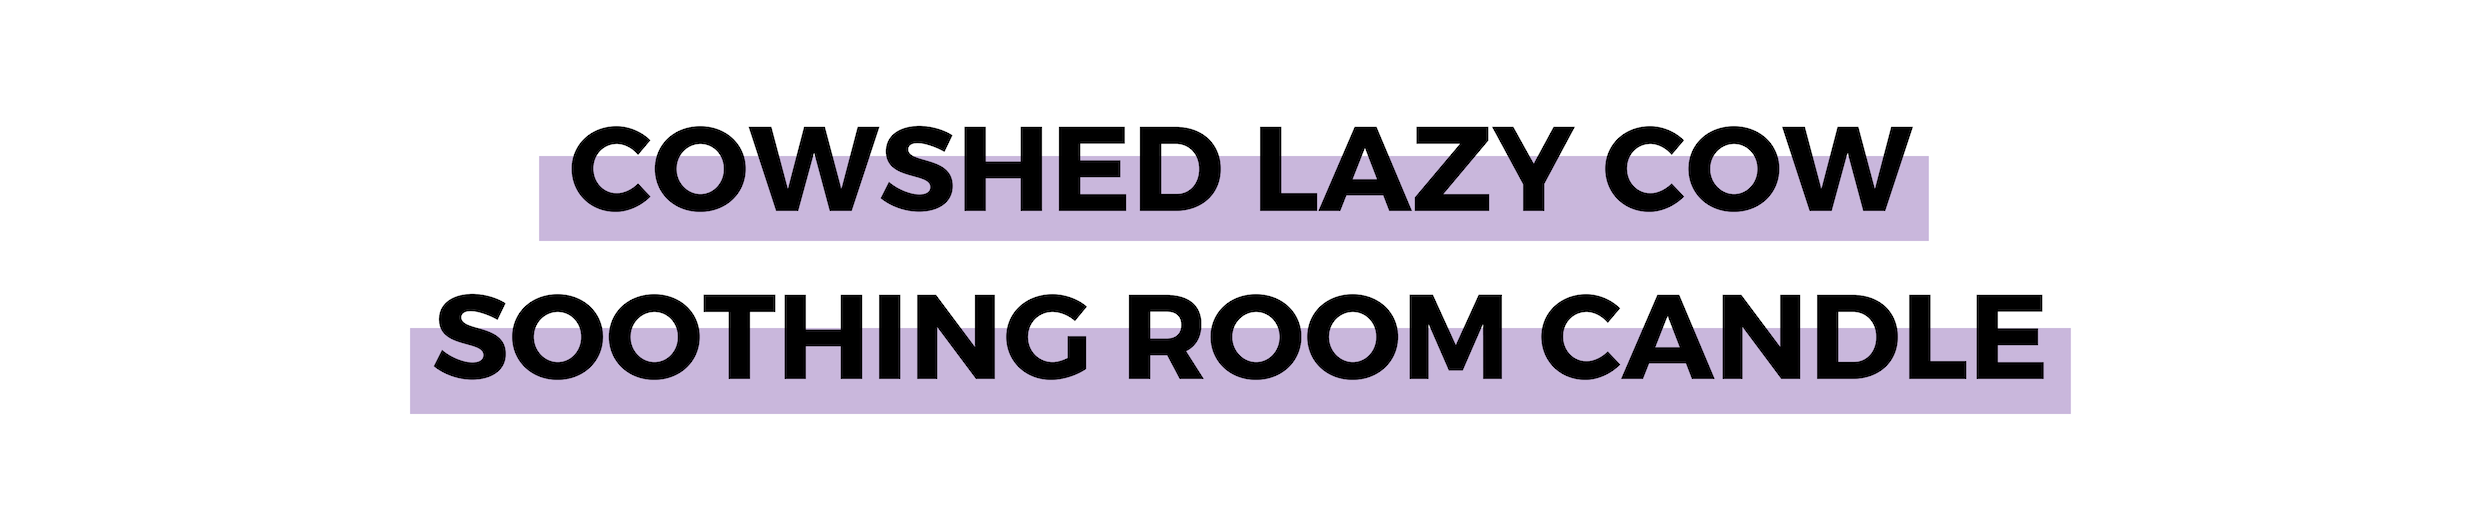 COWSHED LAZY COW SOOTHING ROOM CANDLE.png